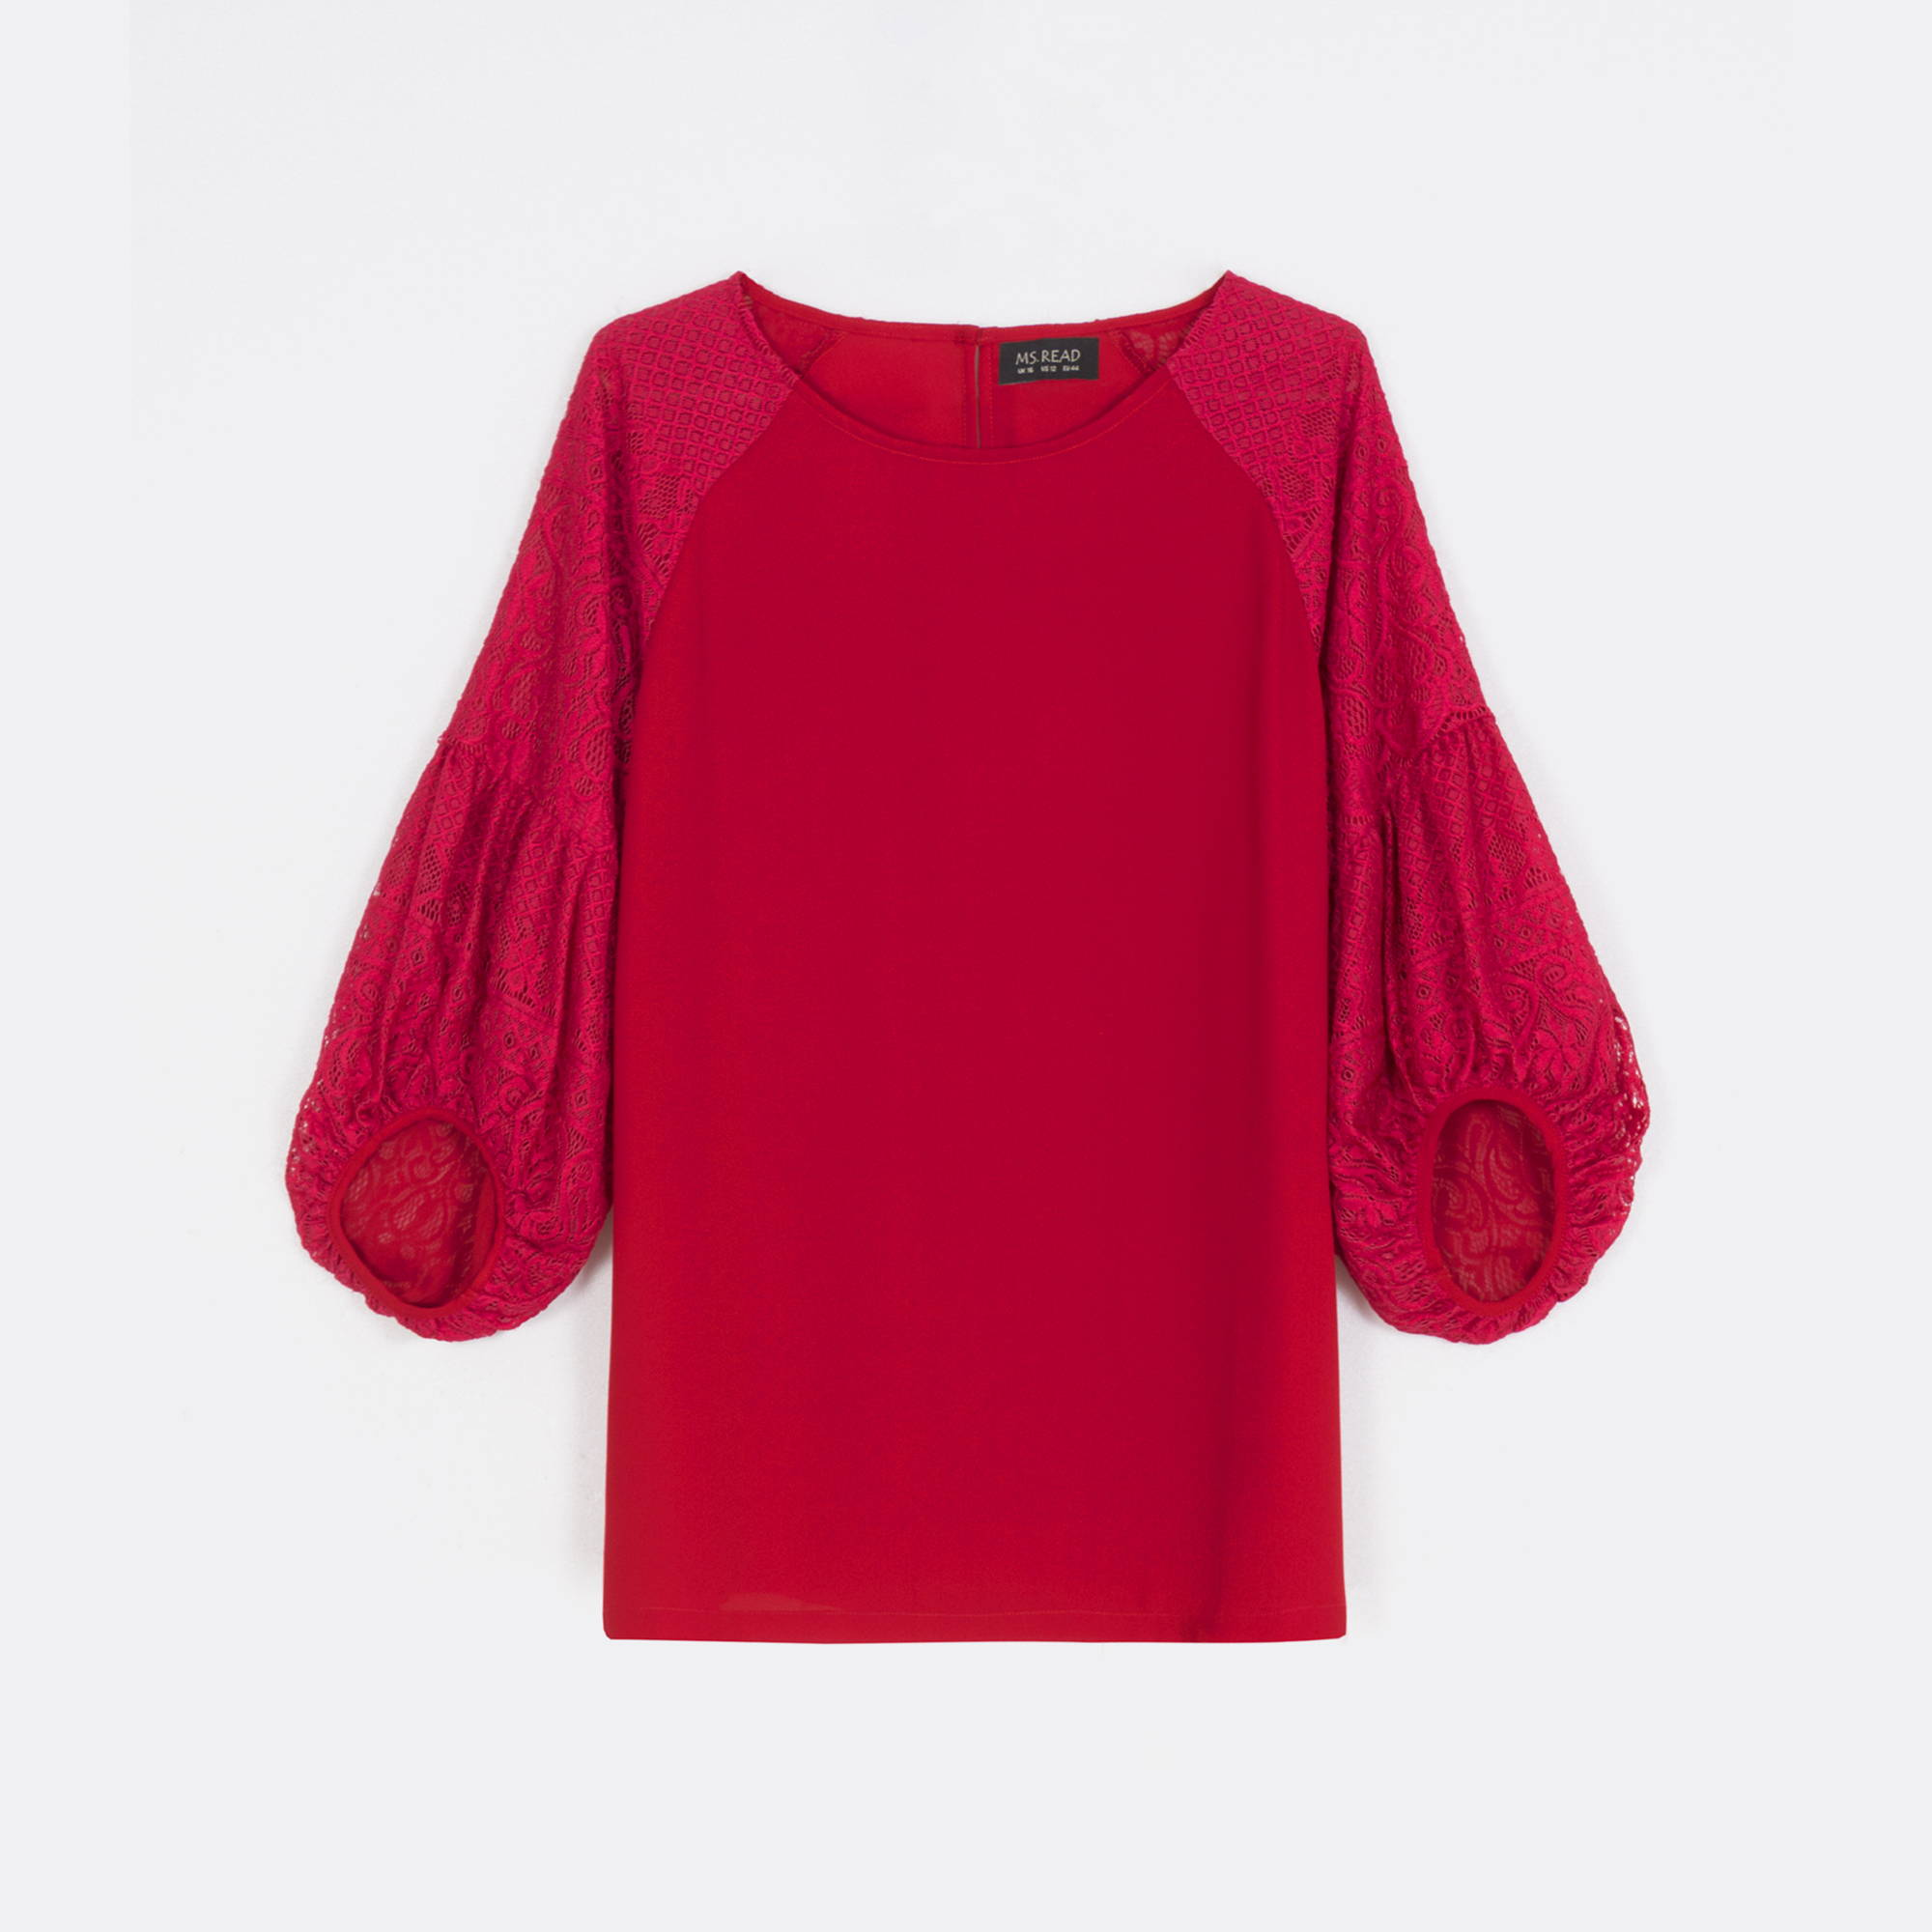 MS. READ Laced Sleeve Top